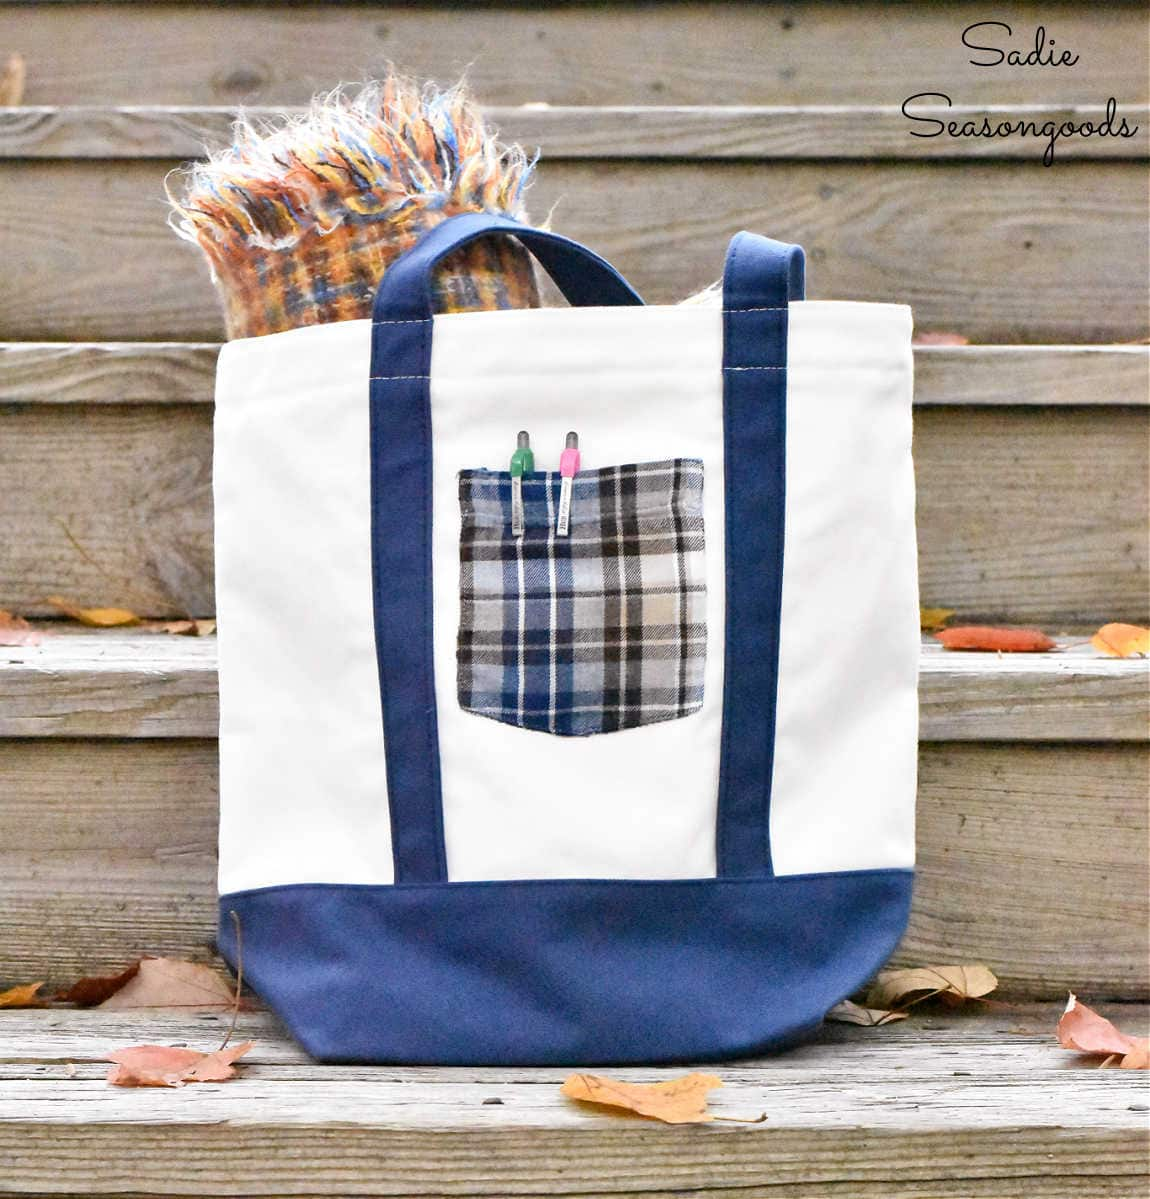 embellishing a canvas tote bag with a shirt pocket